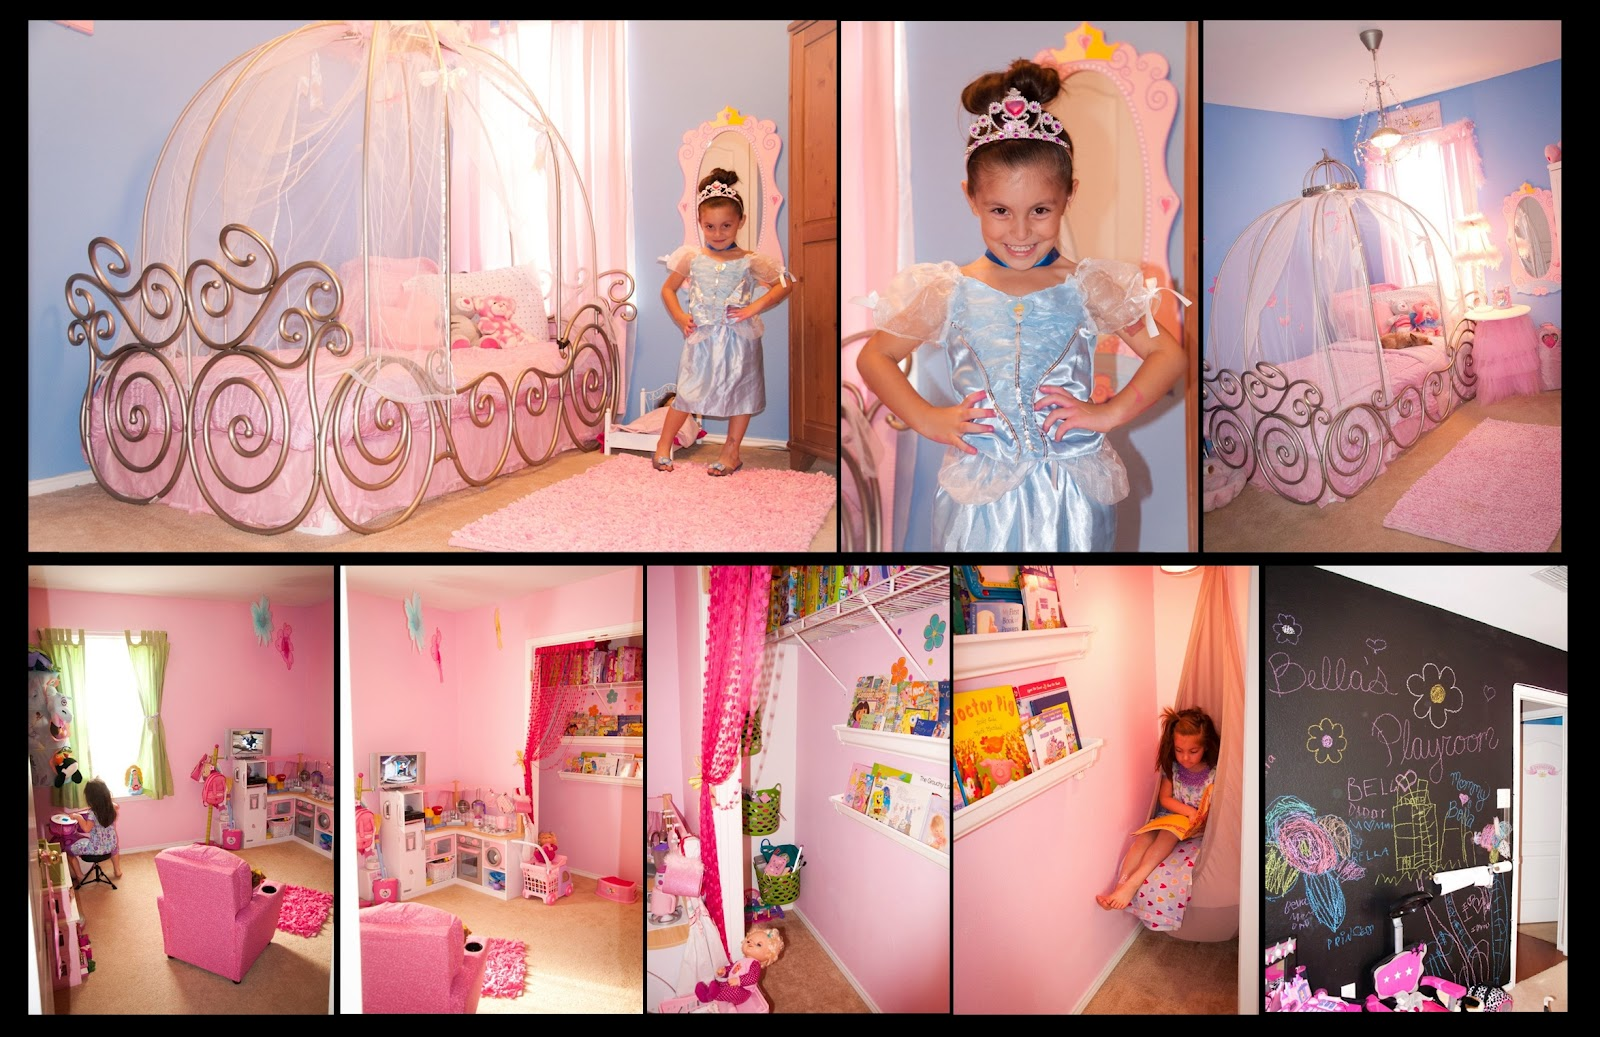 4 year old bedroom ideas 28 images 4 year old girl for Bedroom ideas 11 year old boy